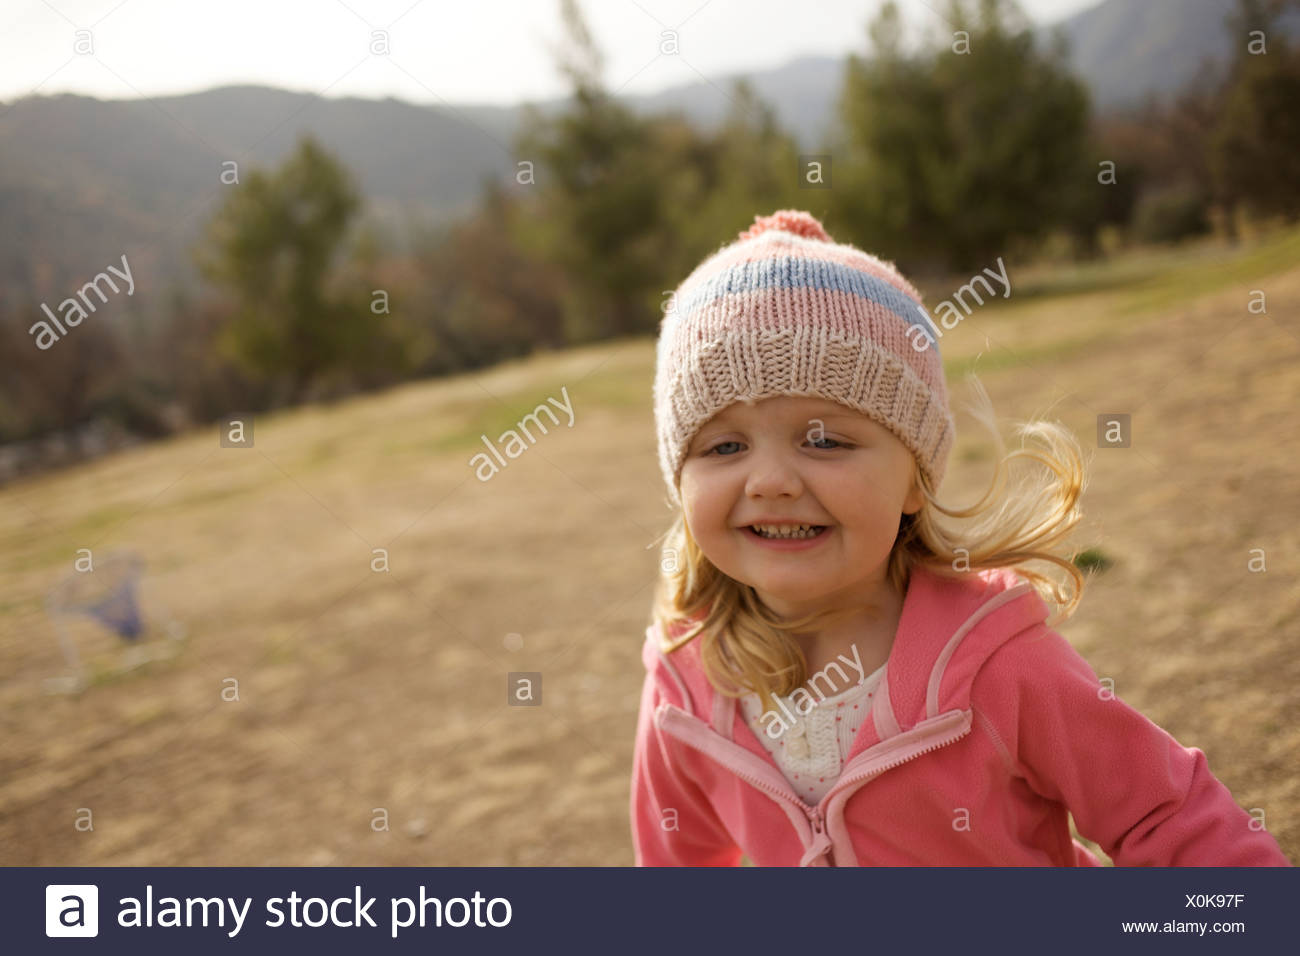 Young girl runs and smiles. - Stock Image